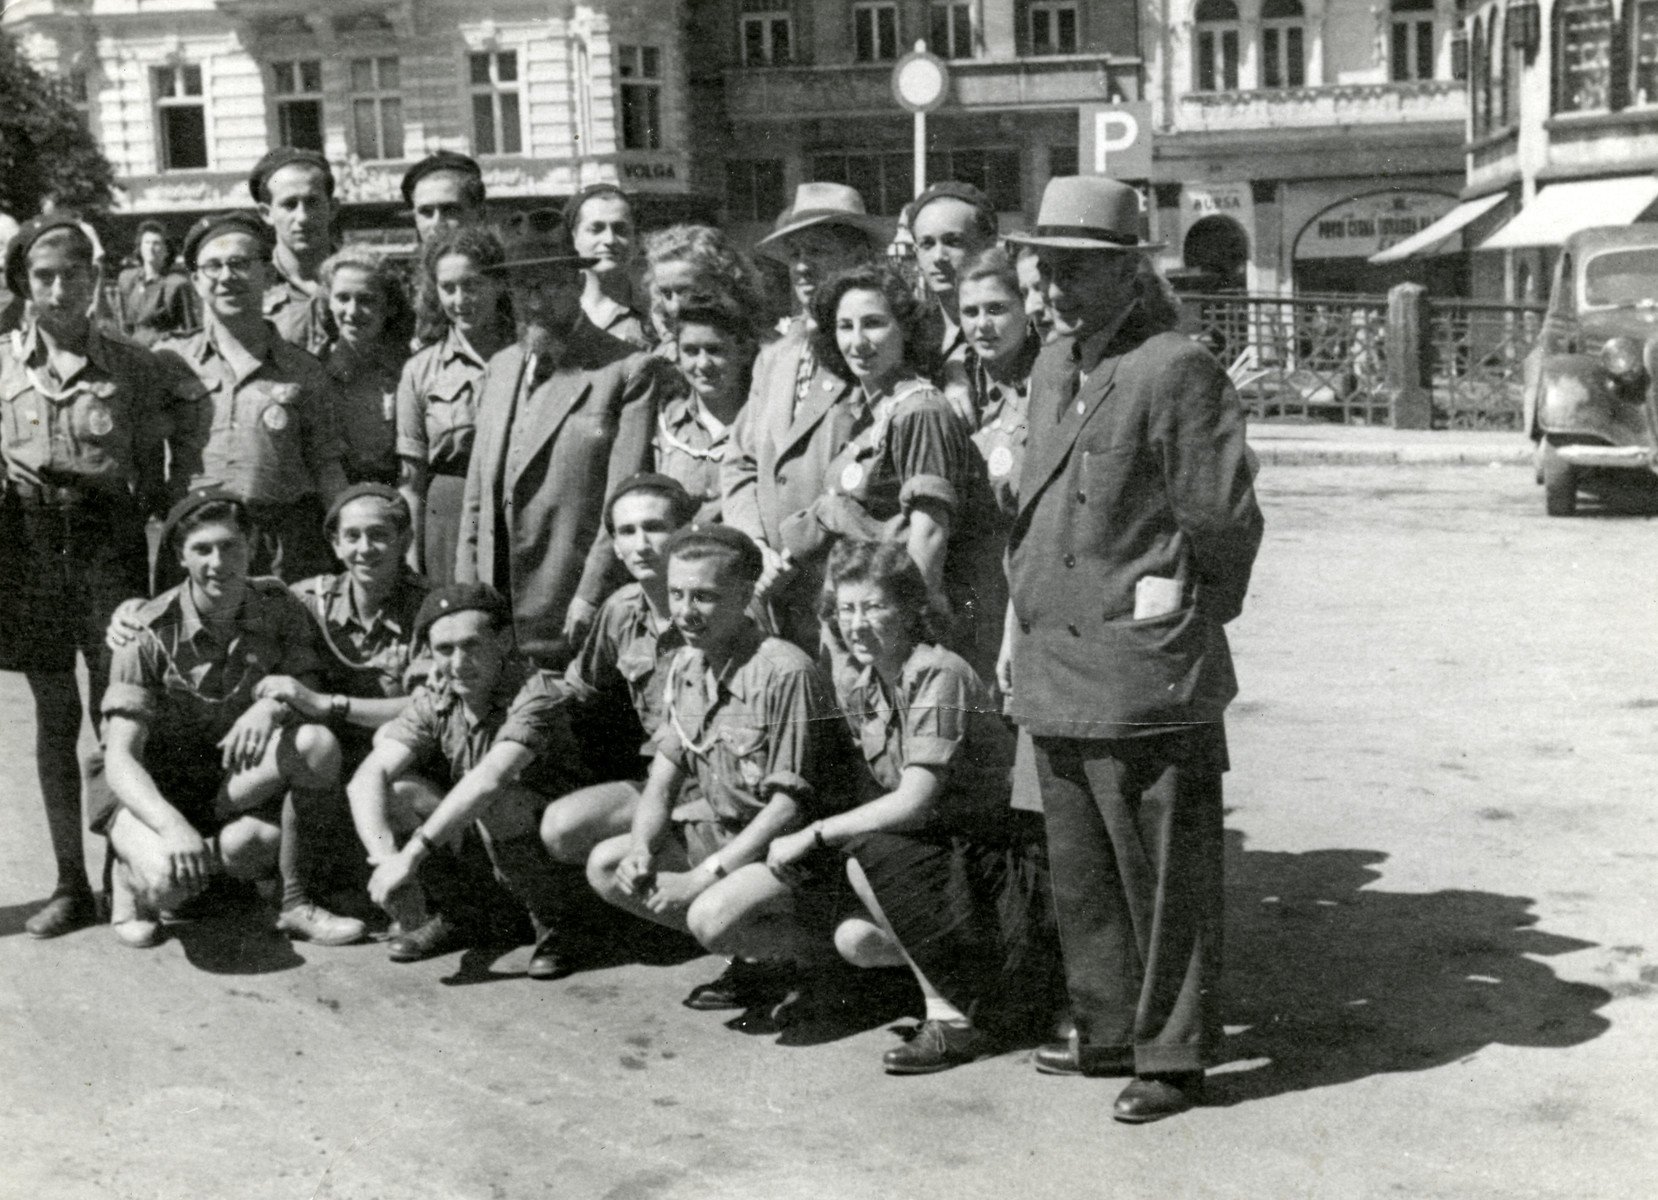 Zionist youth pose on a street in Karlovy Vary.  David Zigmund Steiner is pictured front row, fourth from left.